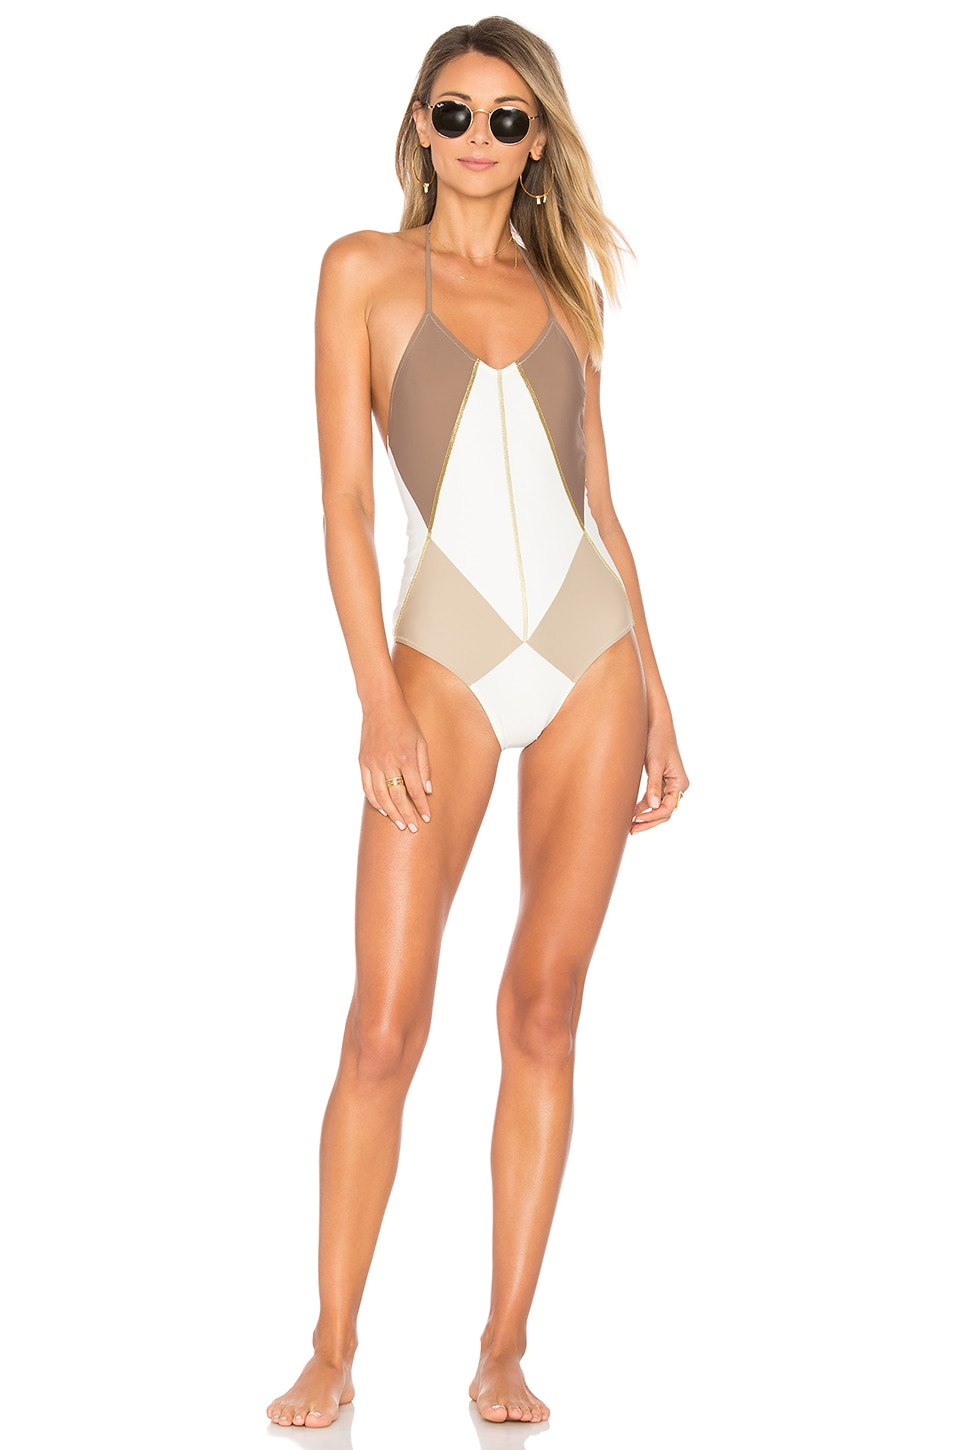 Gregor Pirouzi Isadora One Piece in Brown Sand & White